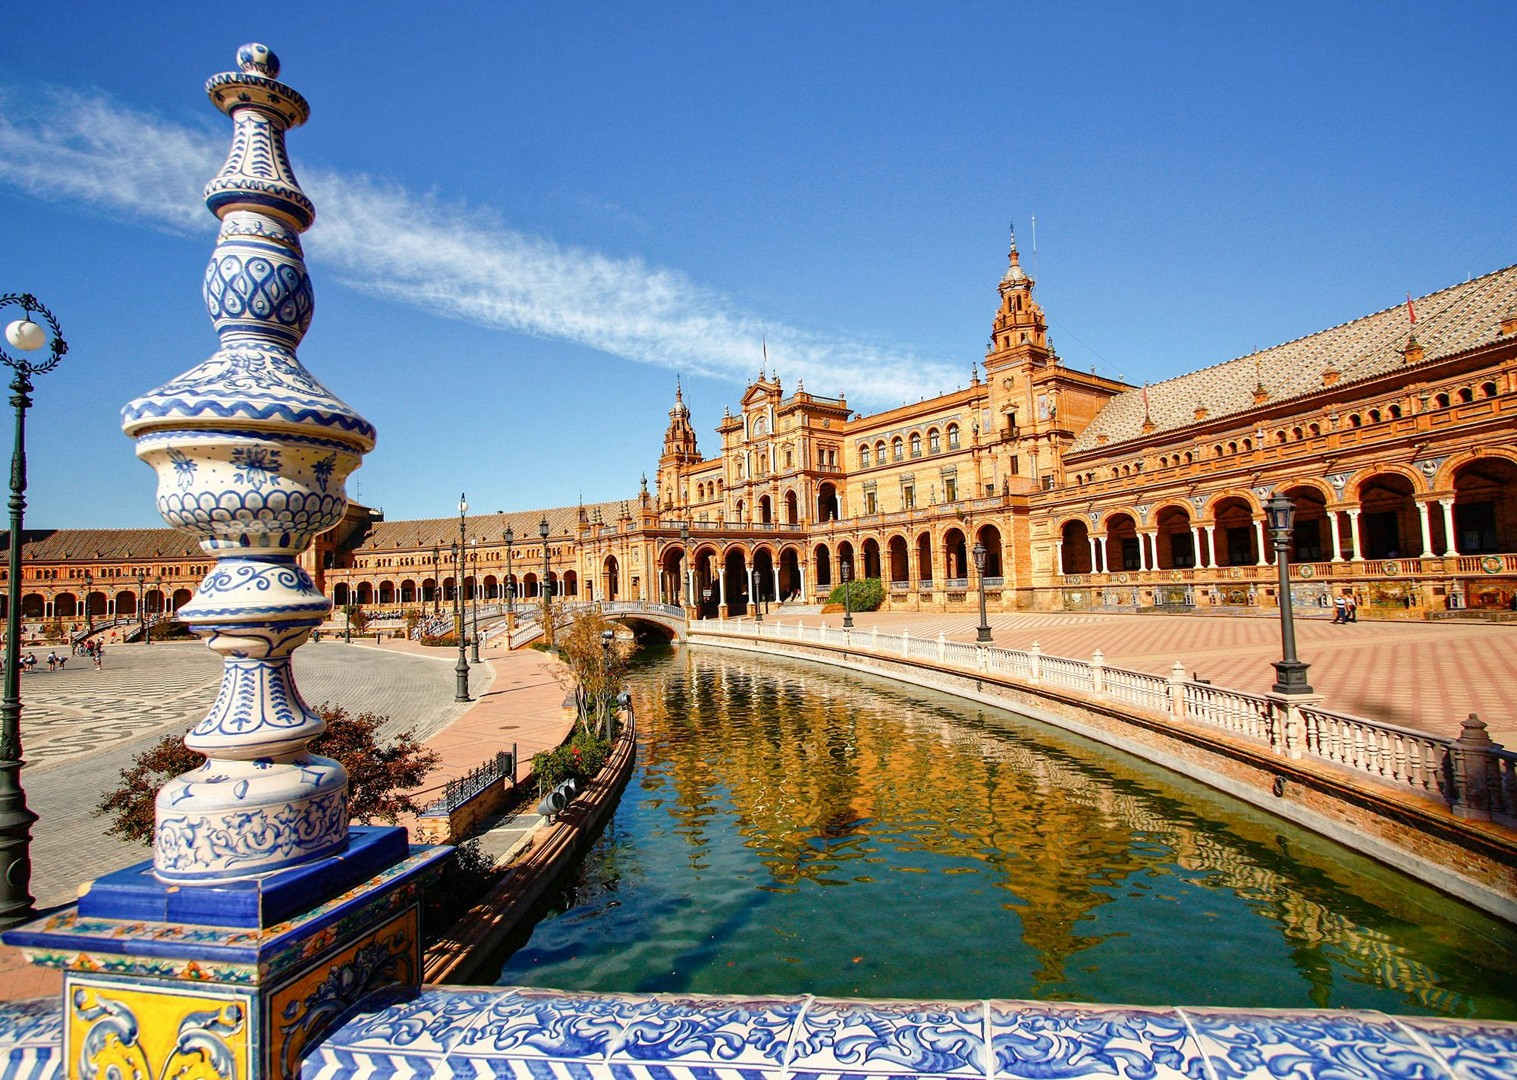 plaza-de-espana-seville-cycling-holiday-in-spain-granada-to-seville-leisure-cycling.jpg - Southern Spain - Granada to Seville - Self-Guided Leisure Cycling Holiday - Leisure Cycling